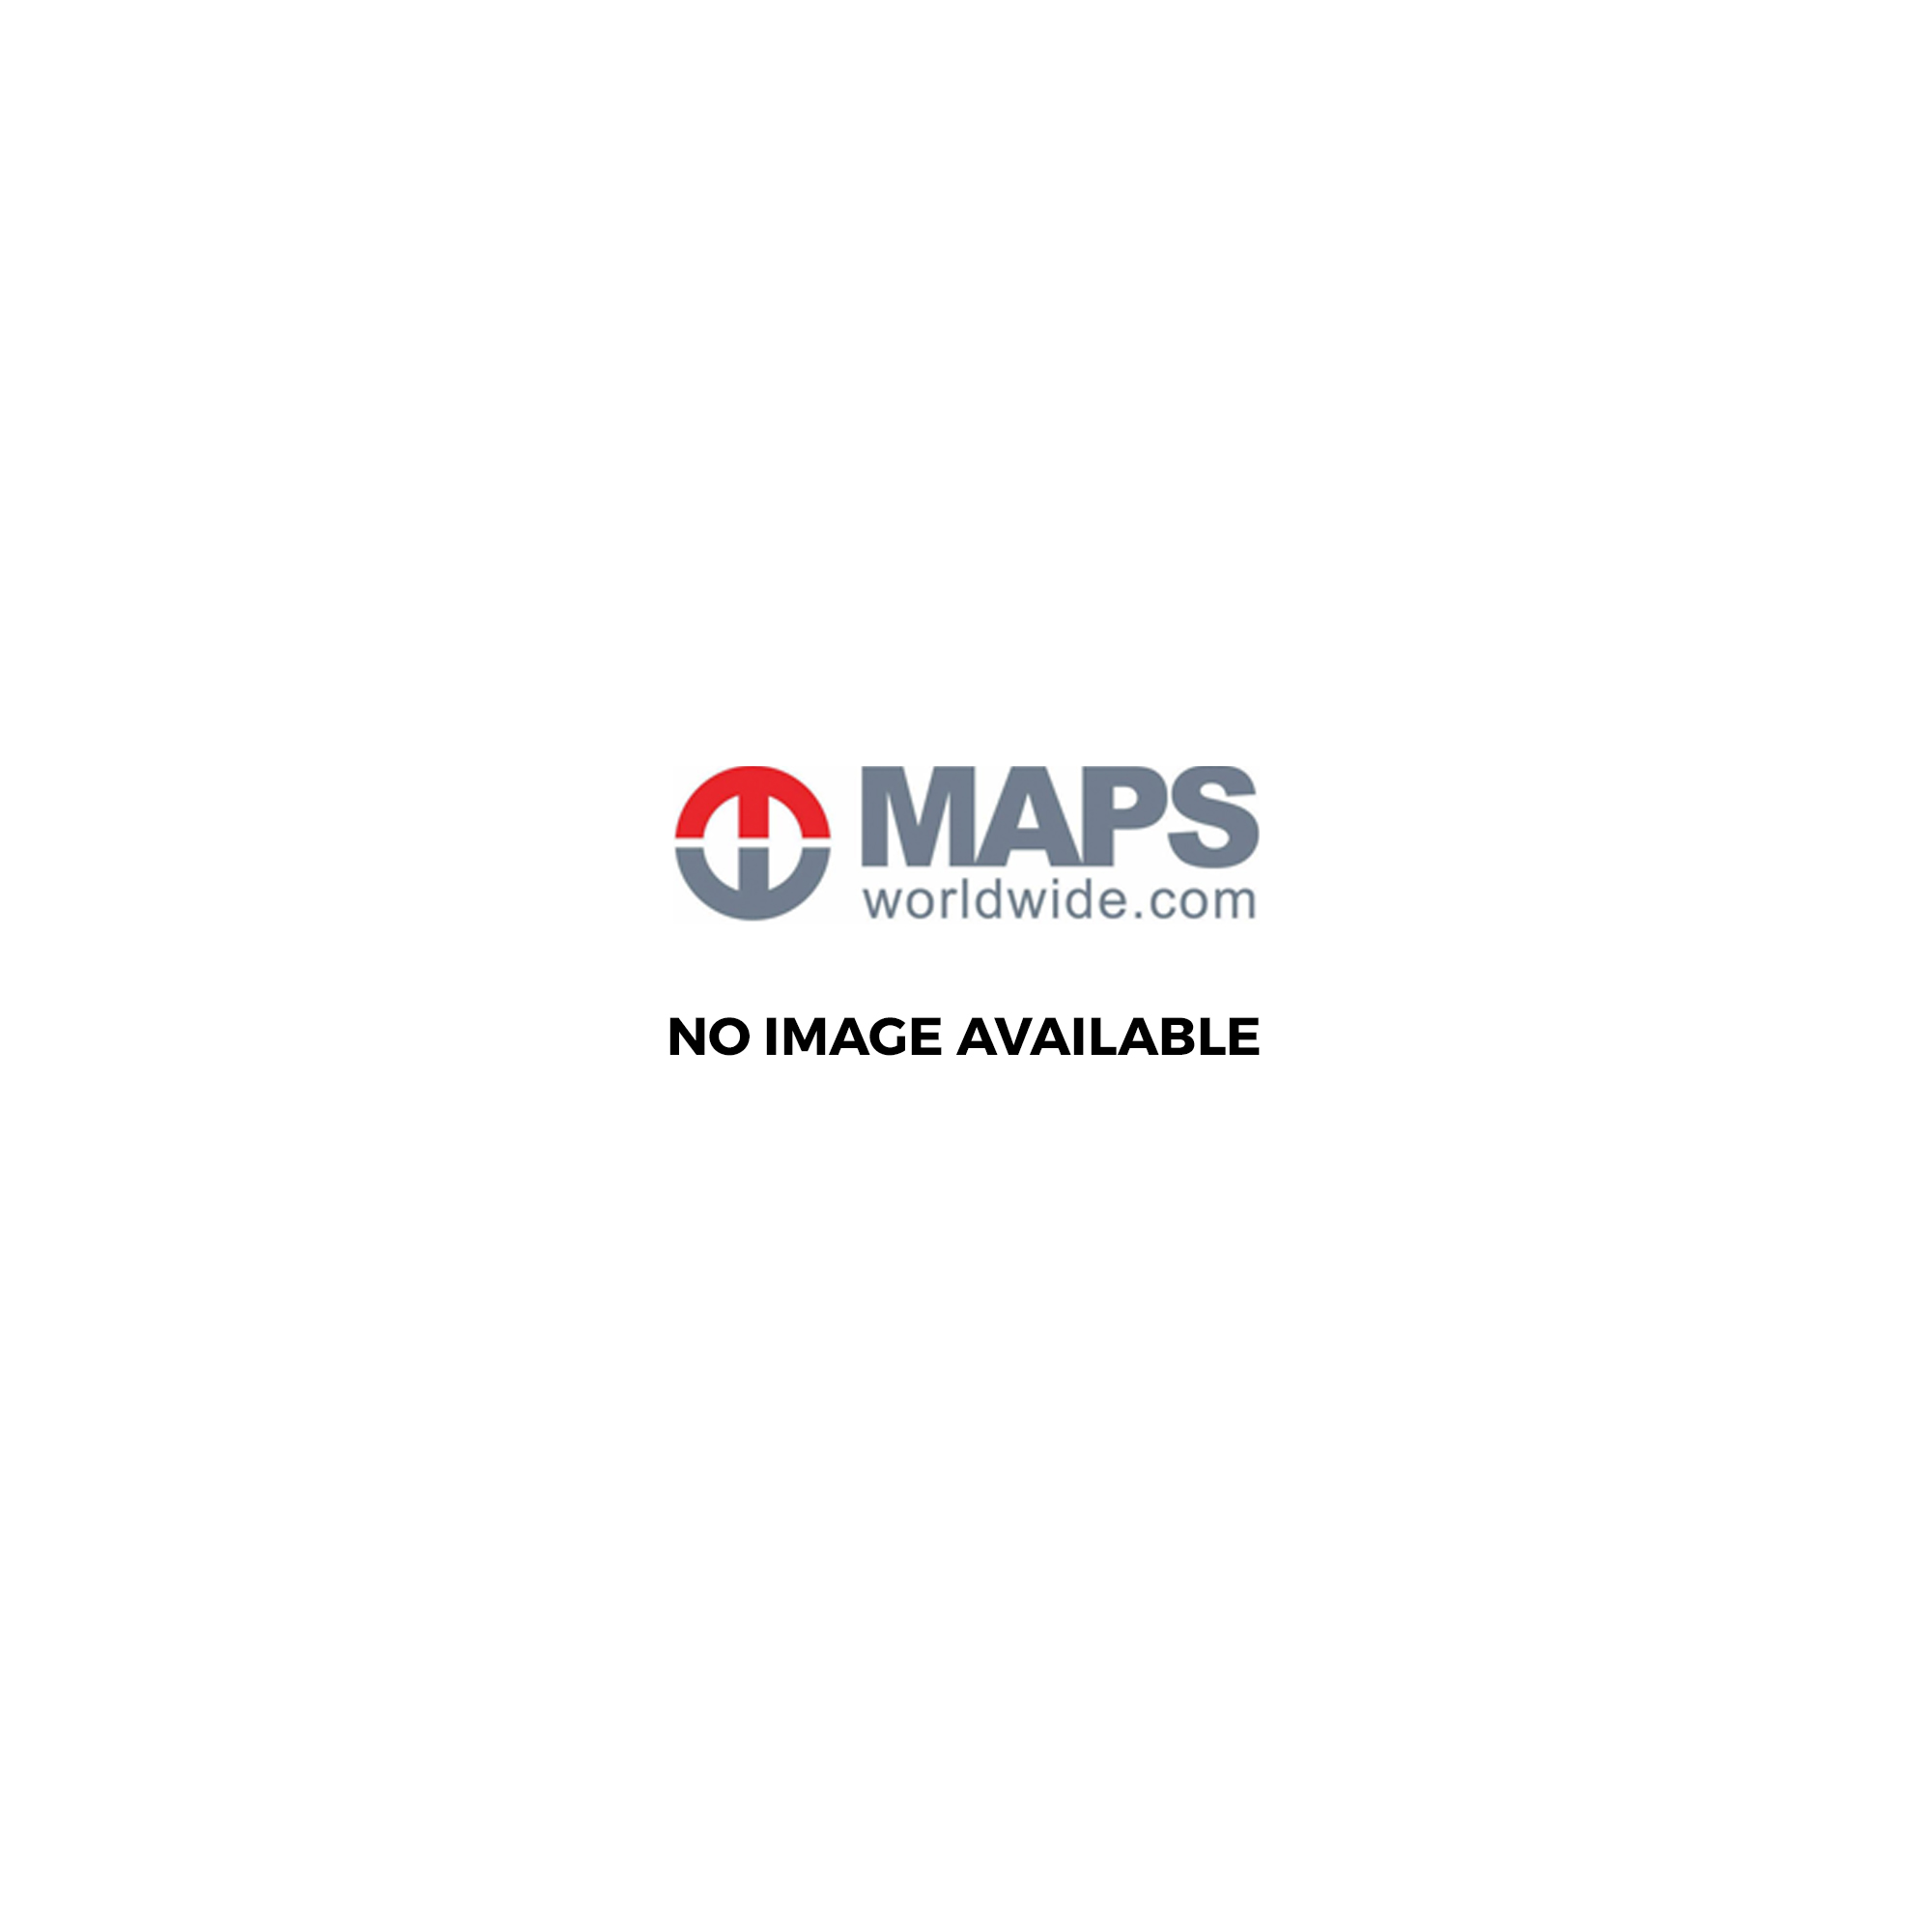 Map Of Canada With City Names.Canada Marco Polo Map